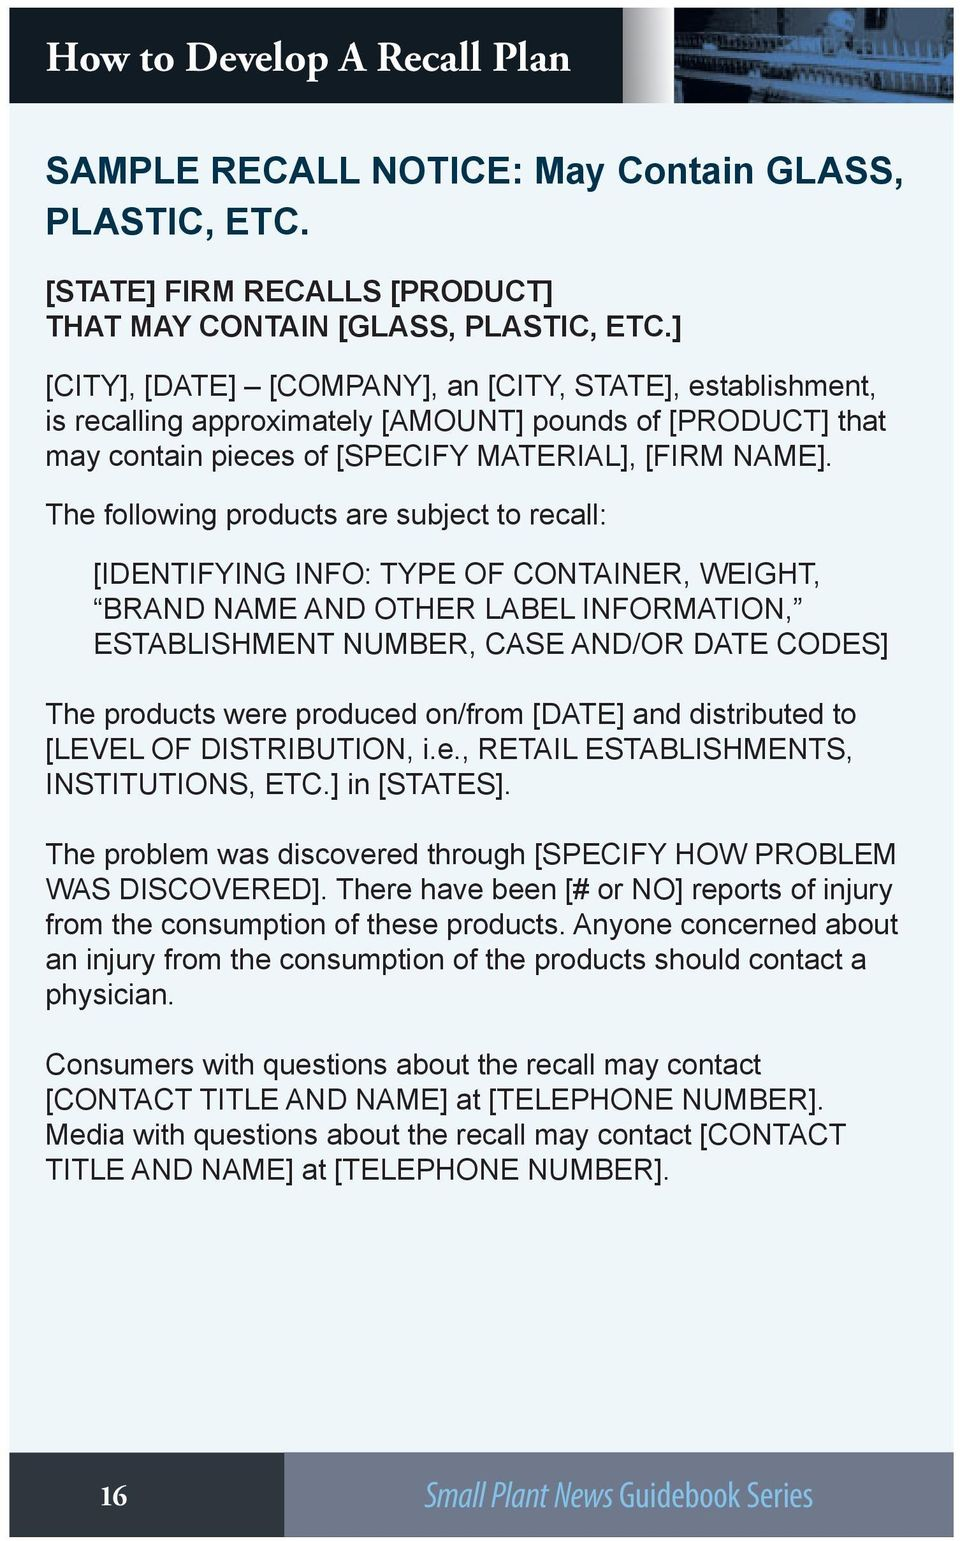 The following products are subject to recall: [IDENTIFYING INFO: TYPE OF CONTAINER, WEIGHT, BRAND NAME AND OTHER LABEL INFORMATION, ESTABLISHMENT NUMBER, CASE AND/OR DATE CODES] The products were